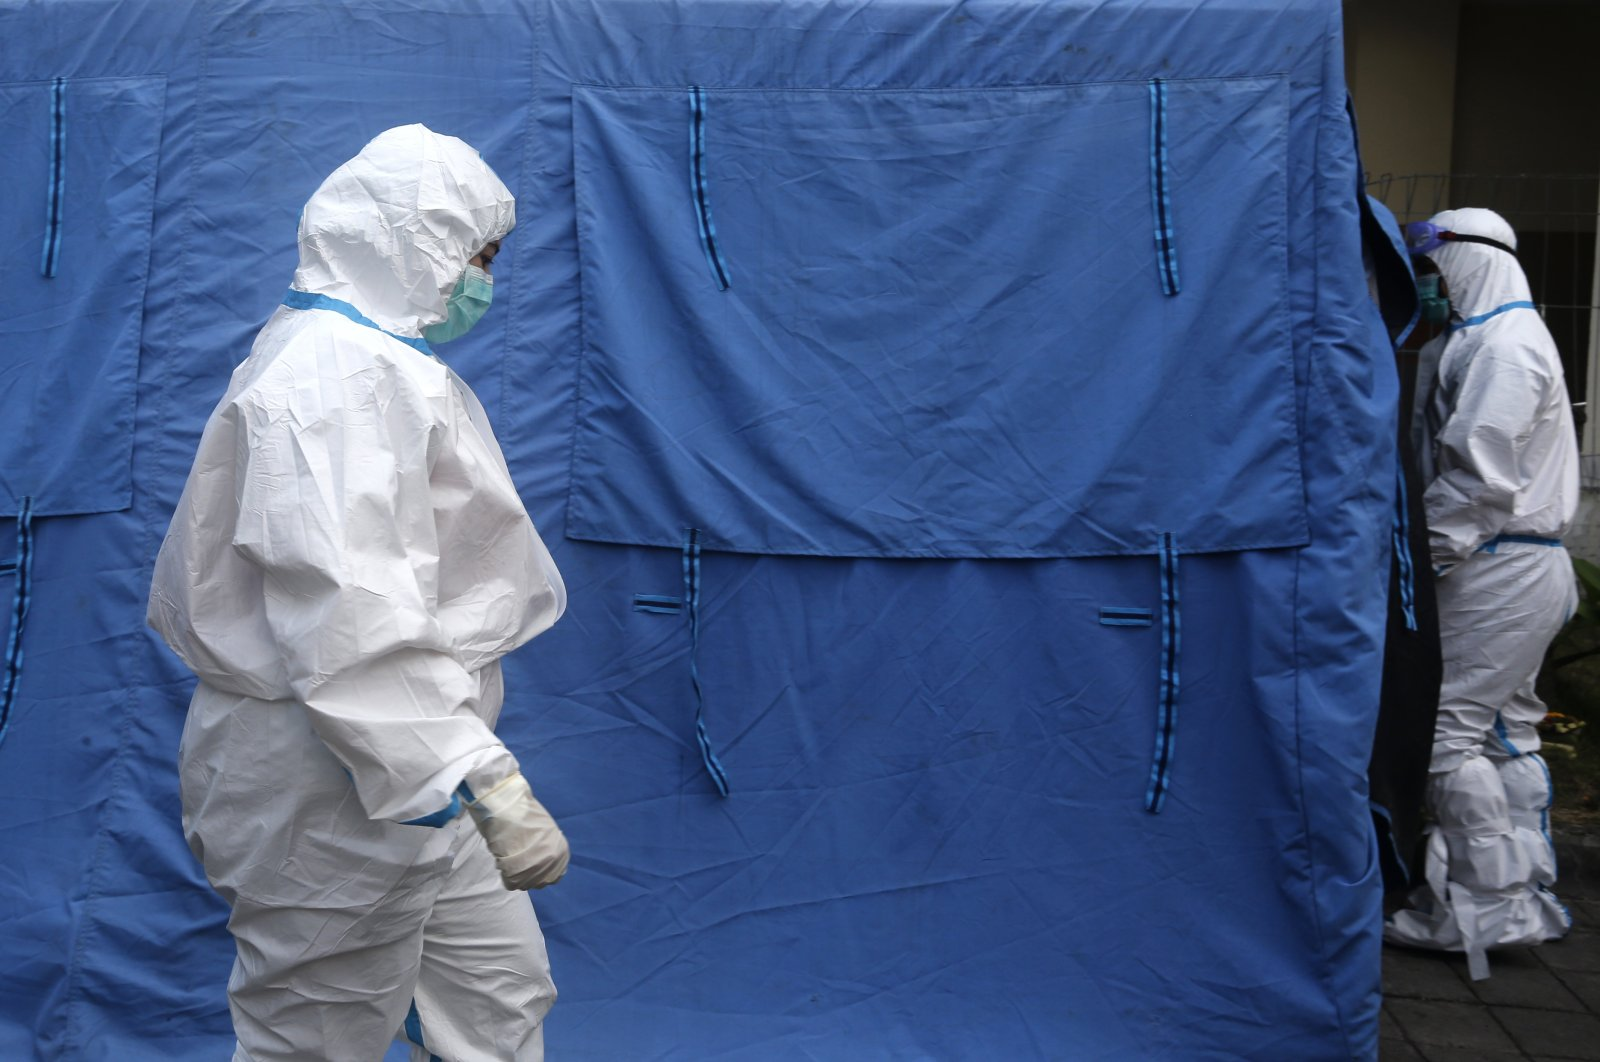 Workers in protective suits walk into a tent to pick up the body of a COVID-19 victim to take for cremation in Bali, Indonesia, Aug. 16, 2021. (AP Photo)